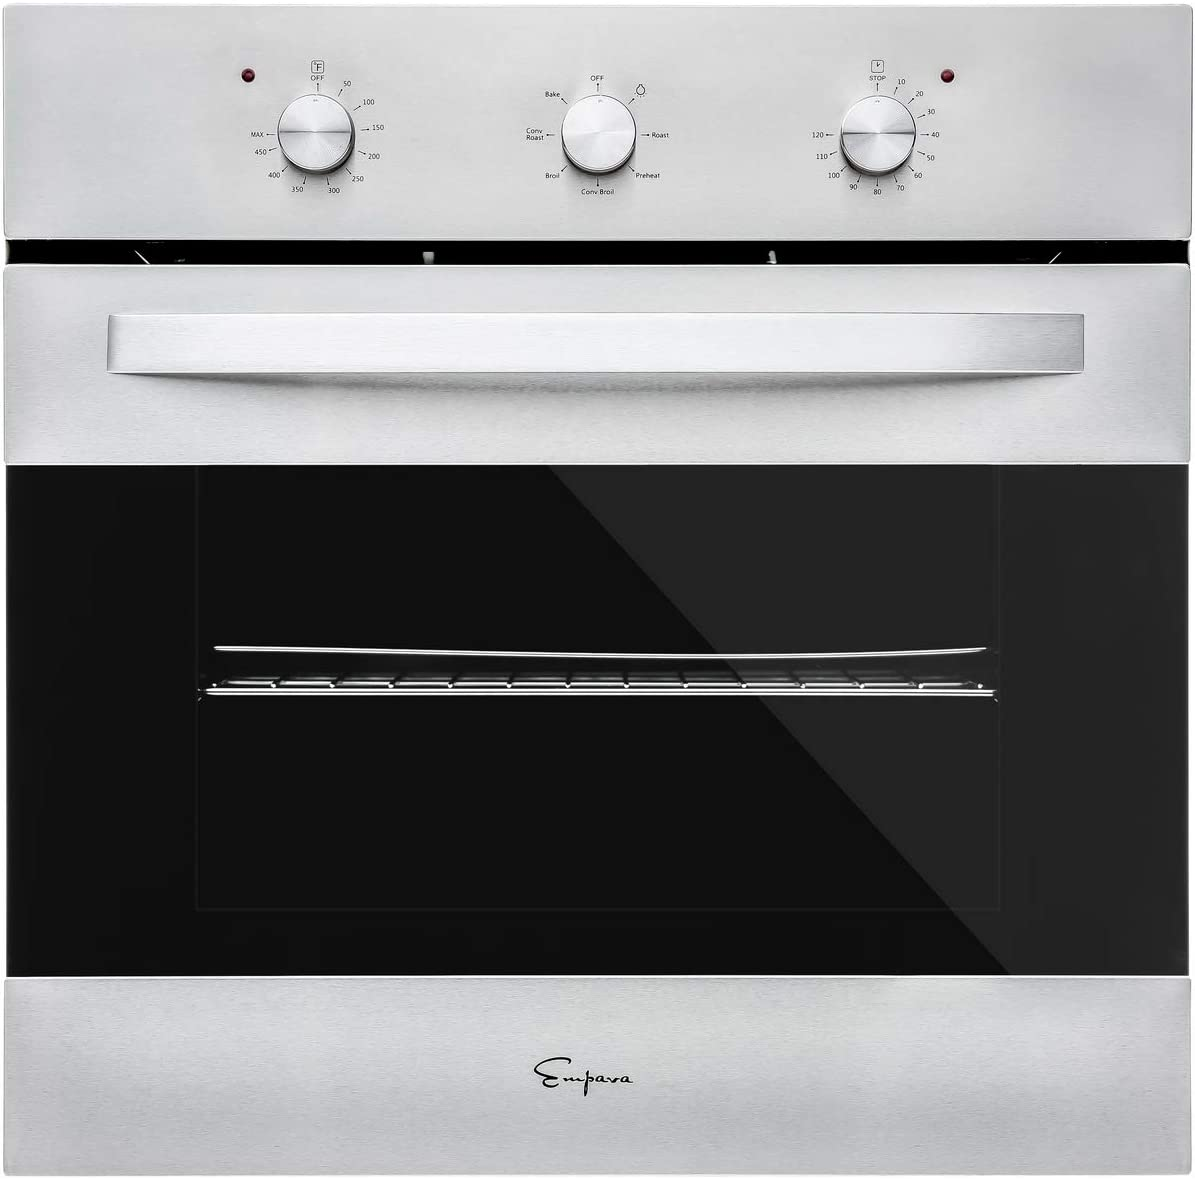 Empava 24 in. Electric Single Wall Oven Convection with 6 Cooking Functions Mechanical Knobs Control in Stainless Steel Model 2020, B14, Silver